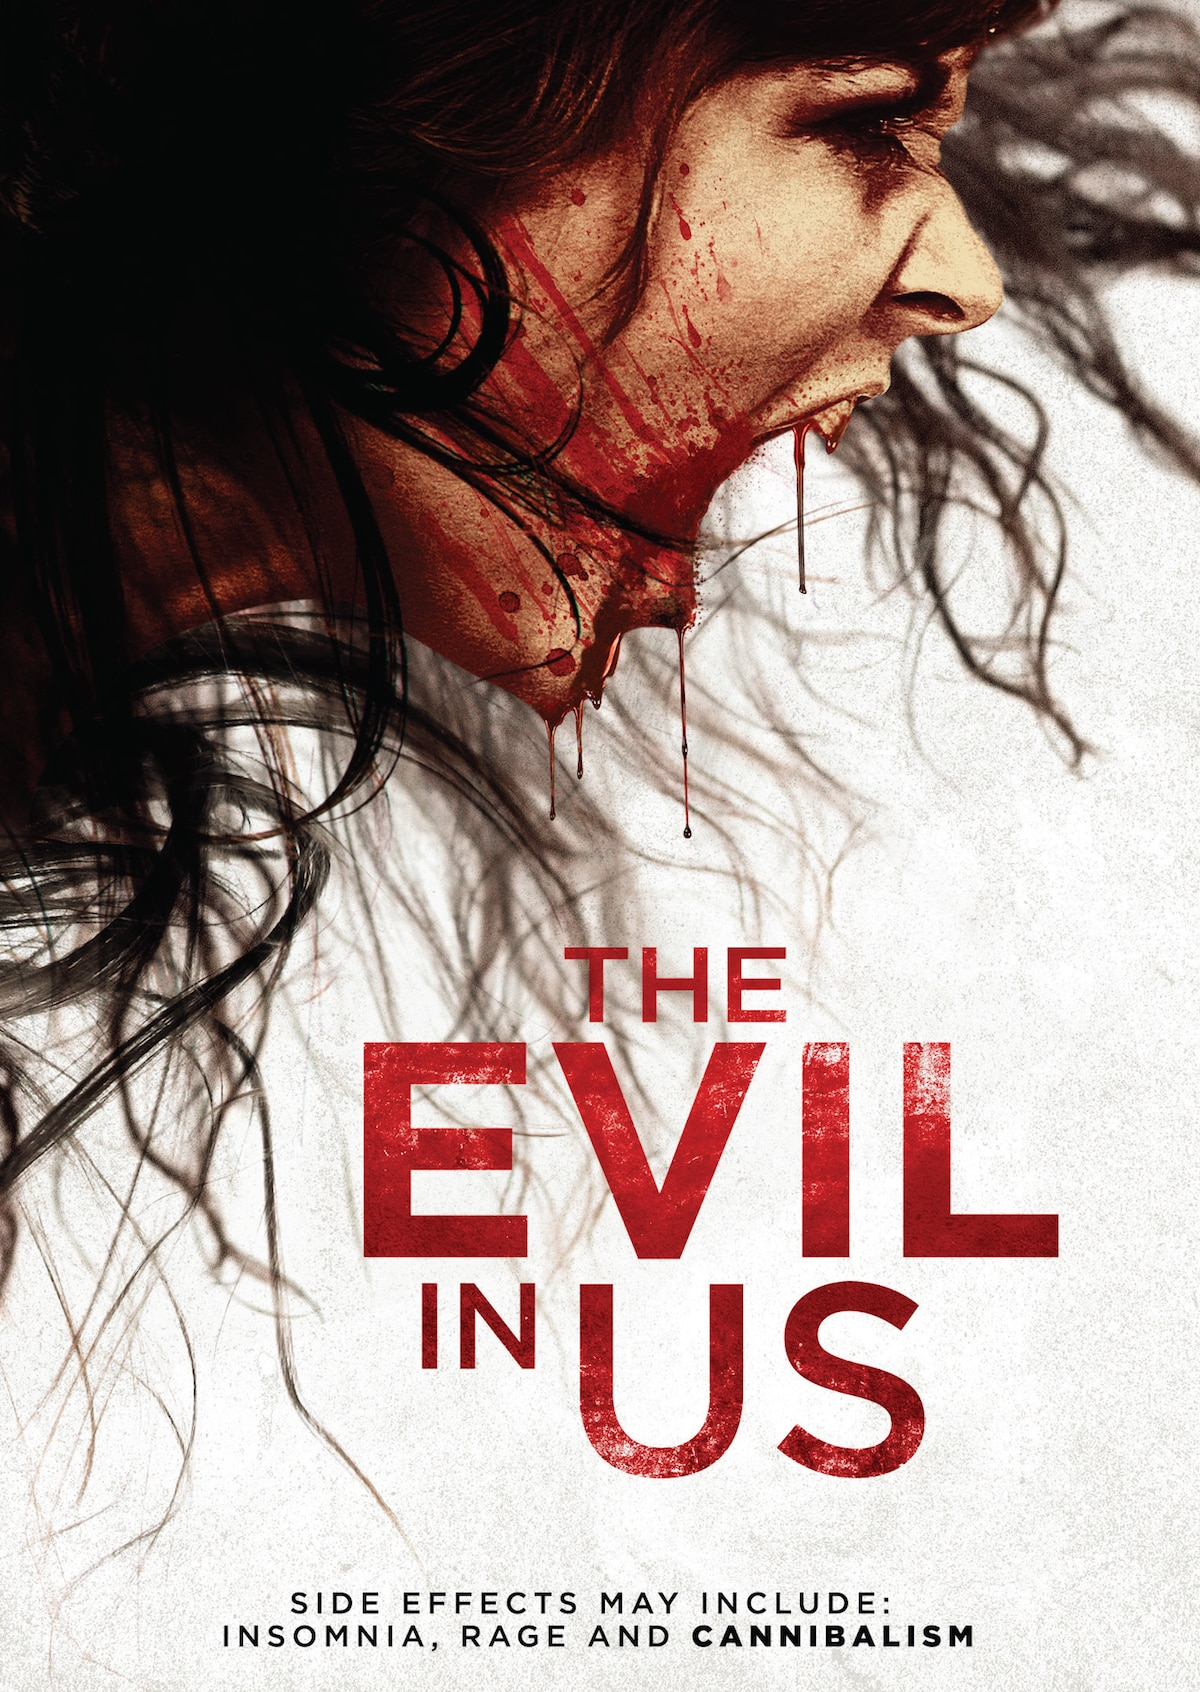 EVIL IN US DVD HIC - Exclusive: The Happy Drink Ain't So Happy in This Clip From The Evil In Us